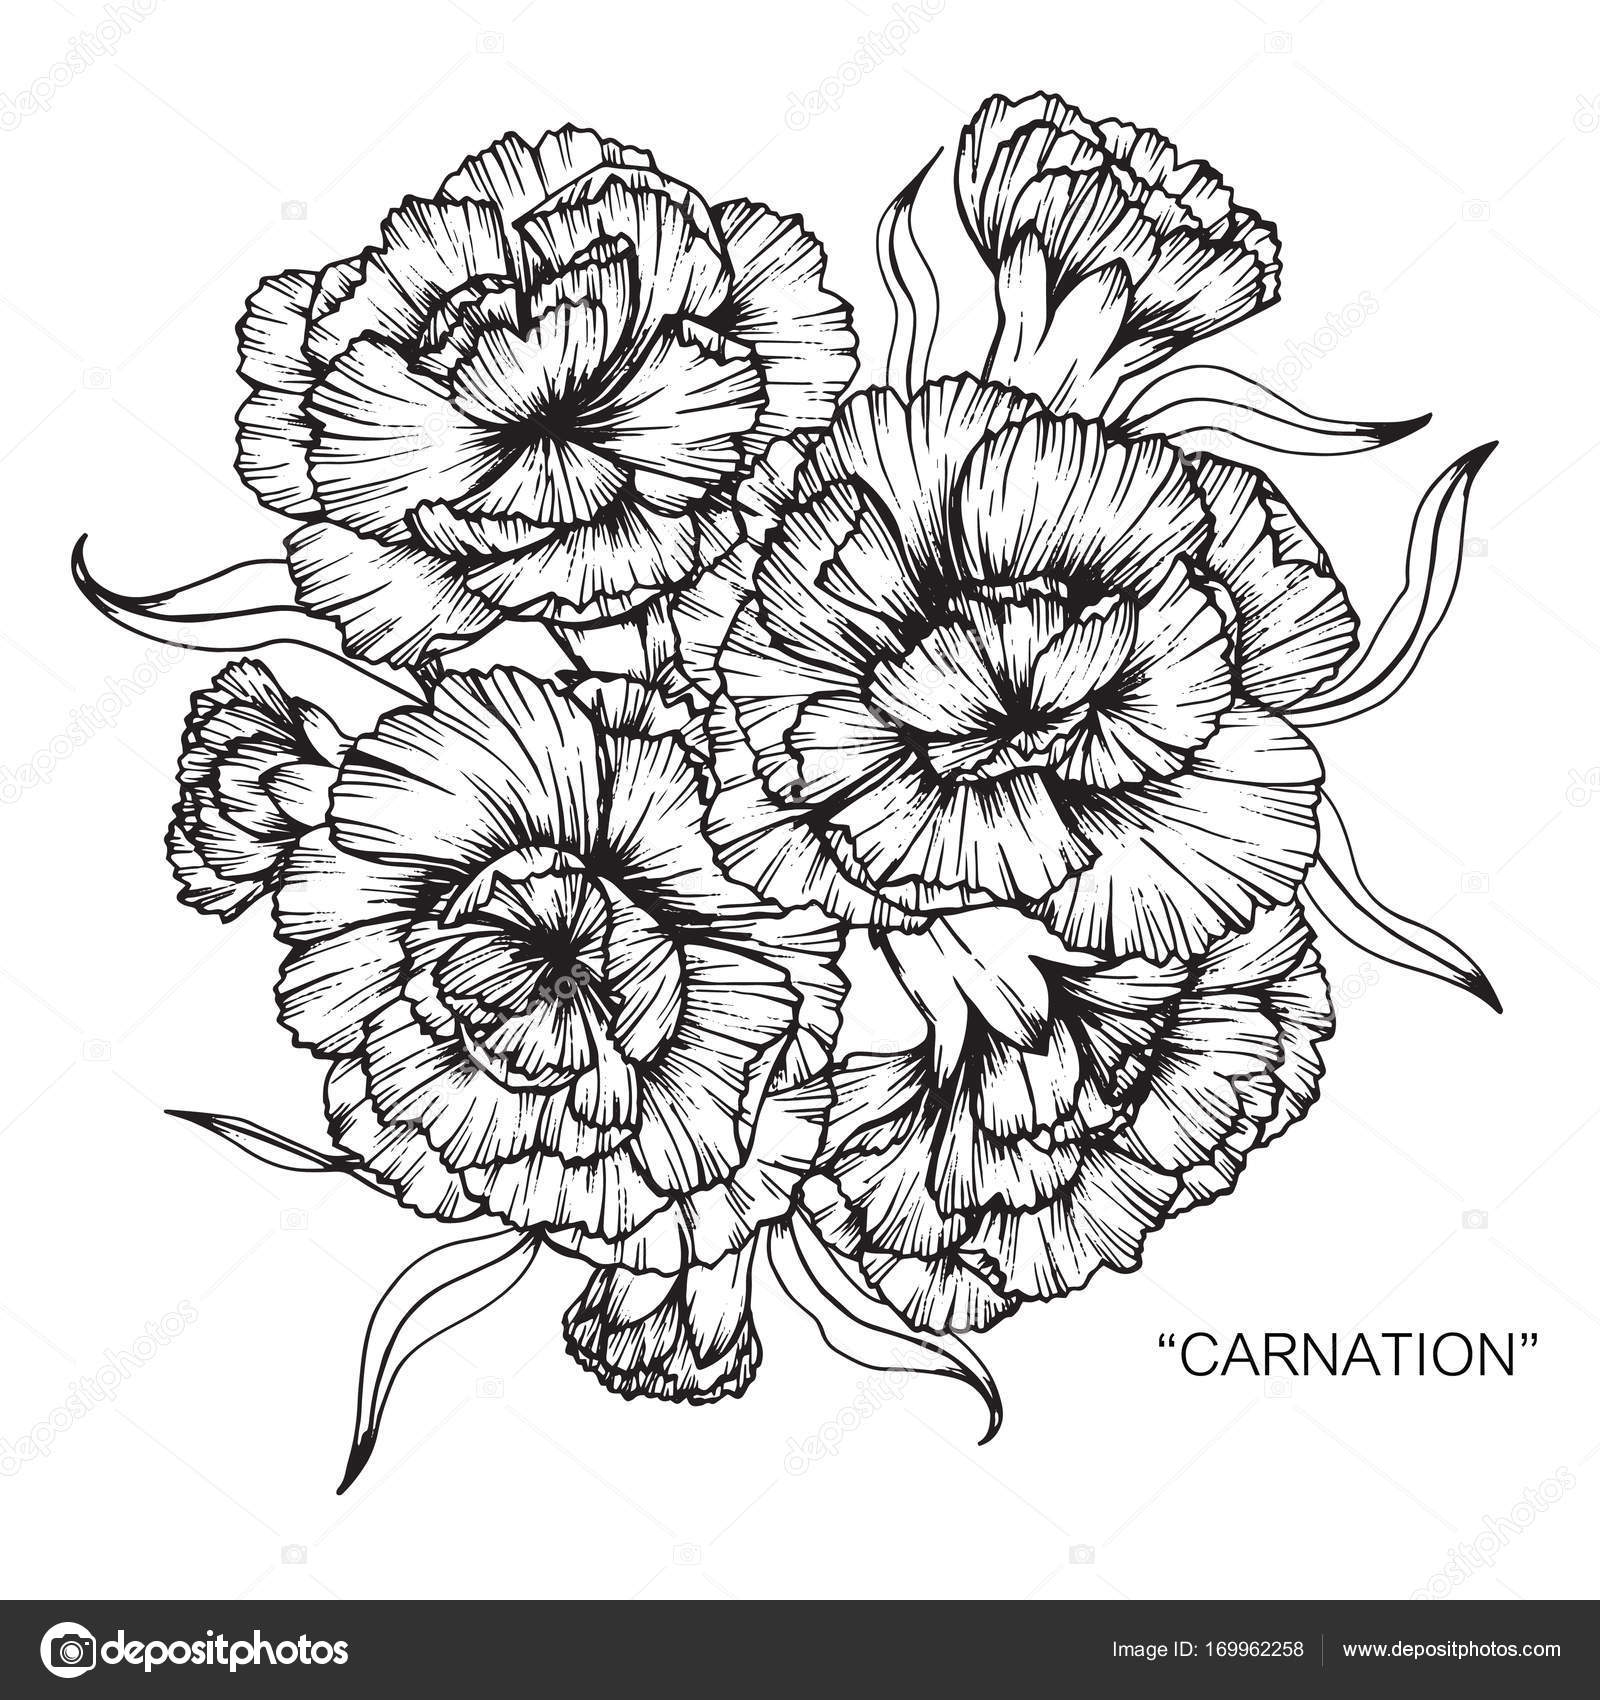 Bouquet of carnation flowers drawing stock vector suwi19 169962258 bouquet of carnation flowers drawing stock vector izmirmasajfo